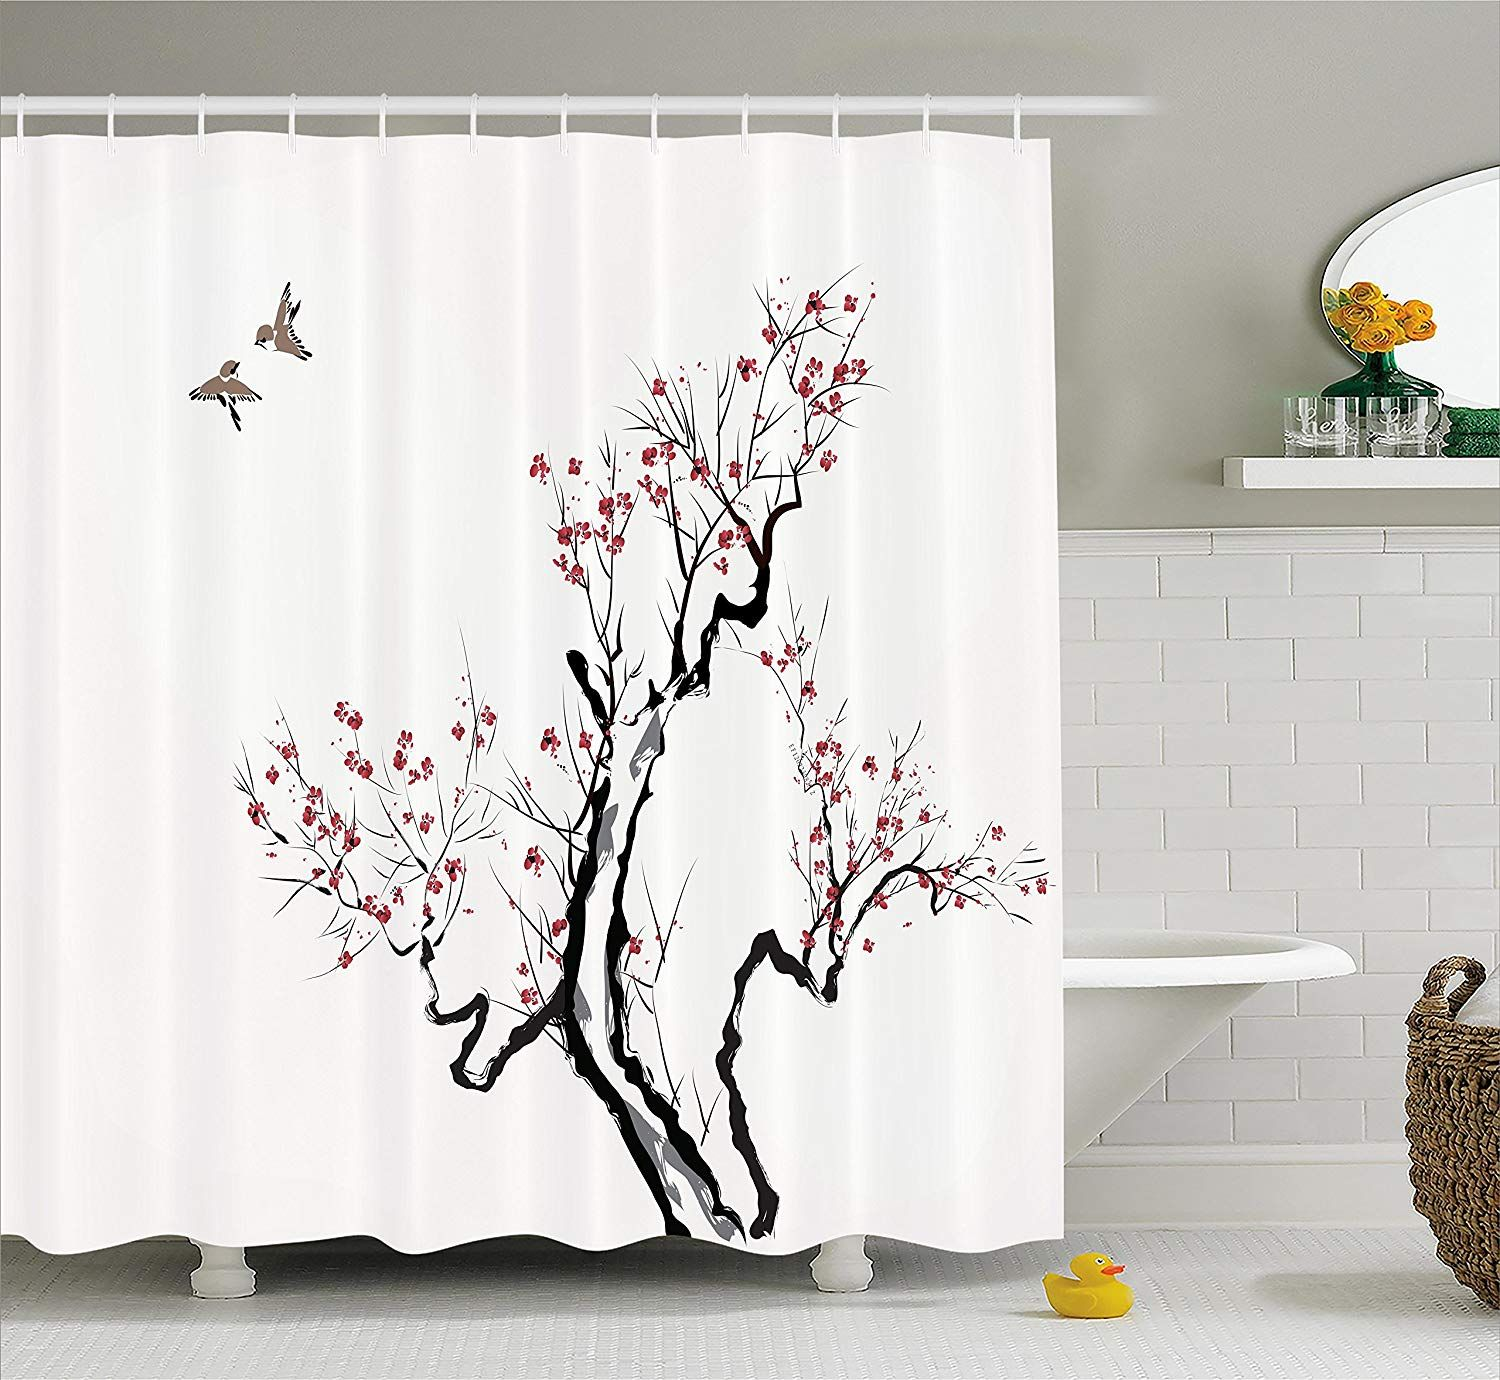 Bathroom Shower Curtains Pink Blossoms Decor Leaves And Plants Spring Flowers Multi Polyeste Bathroom Decor Patterned Shower Curtain Bathroom Shower Curtains